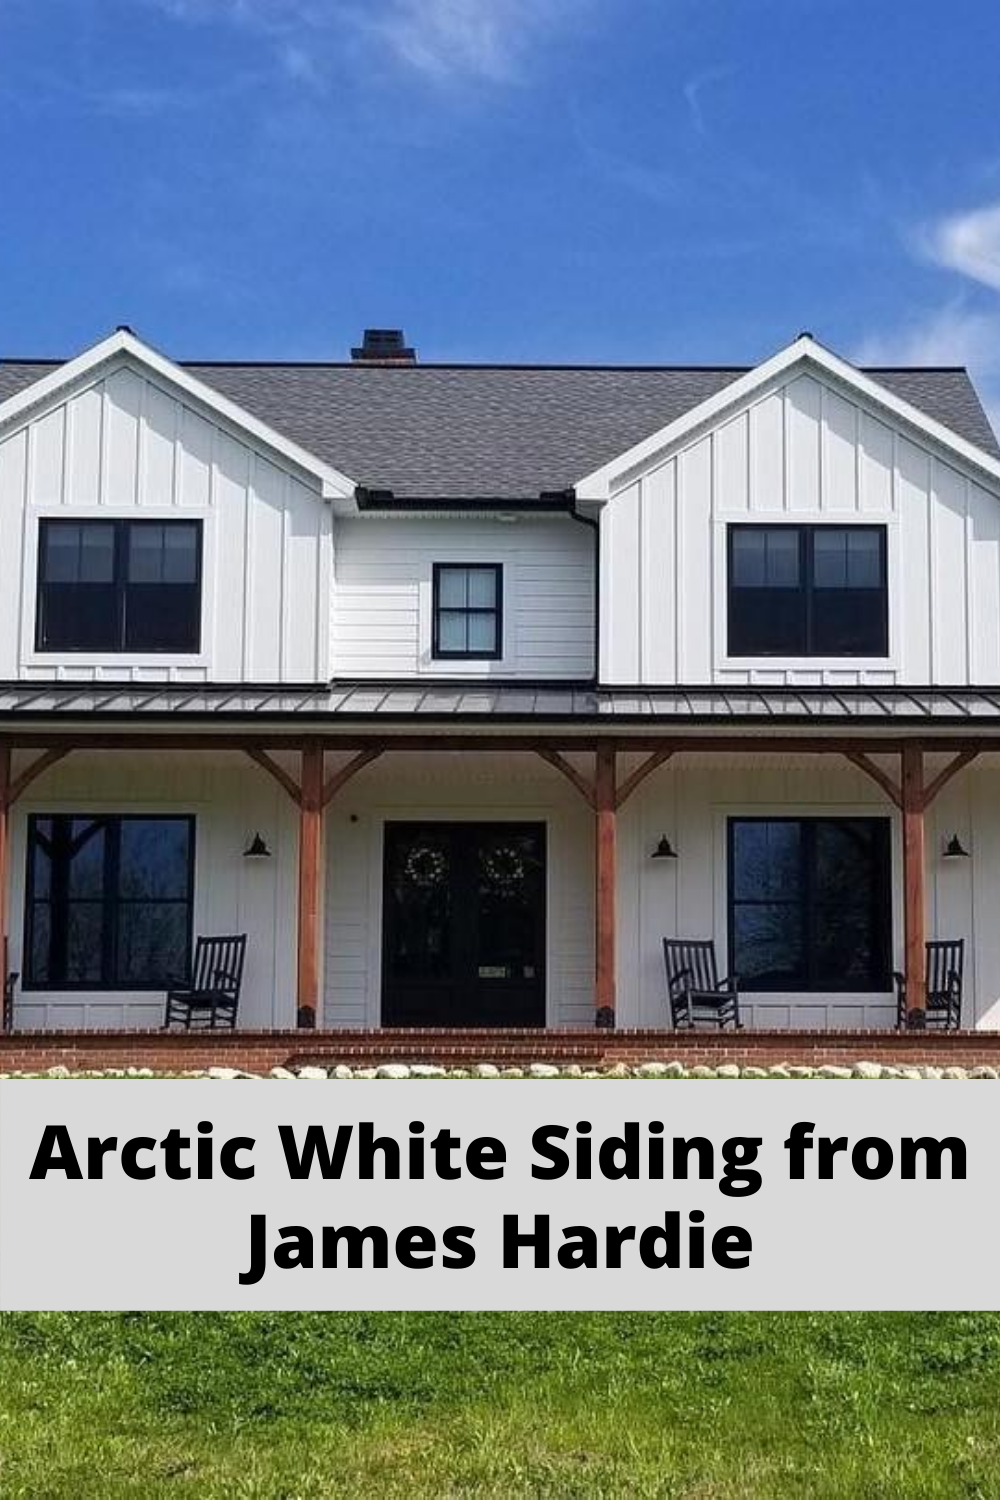 Arctic White Siding By James Hardie In 2020 White Siding Siding Colors For Houses Siding